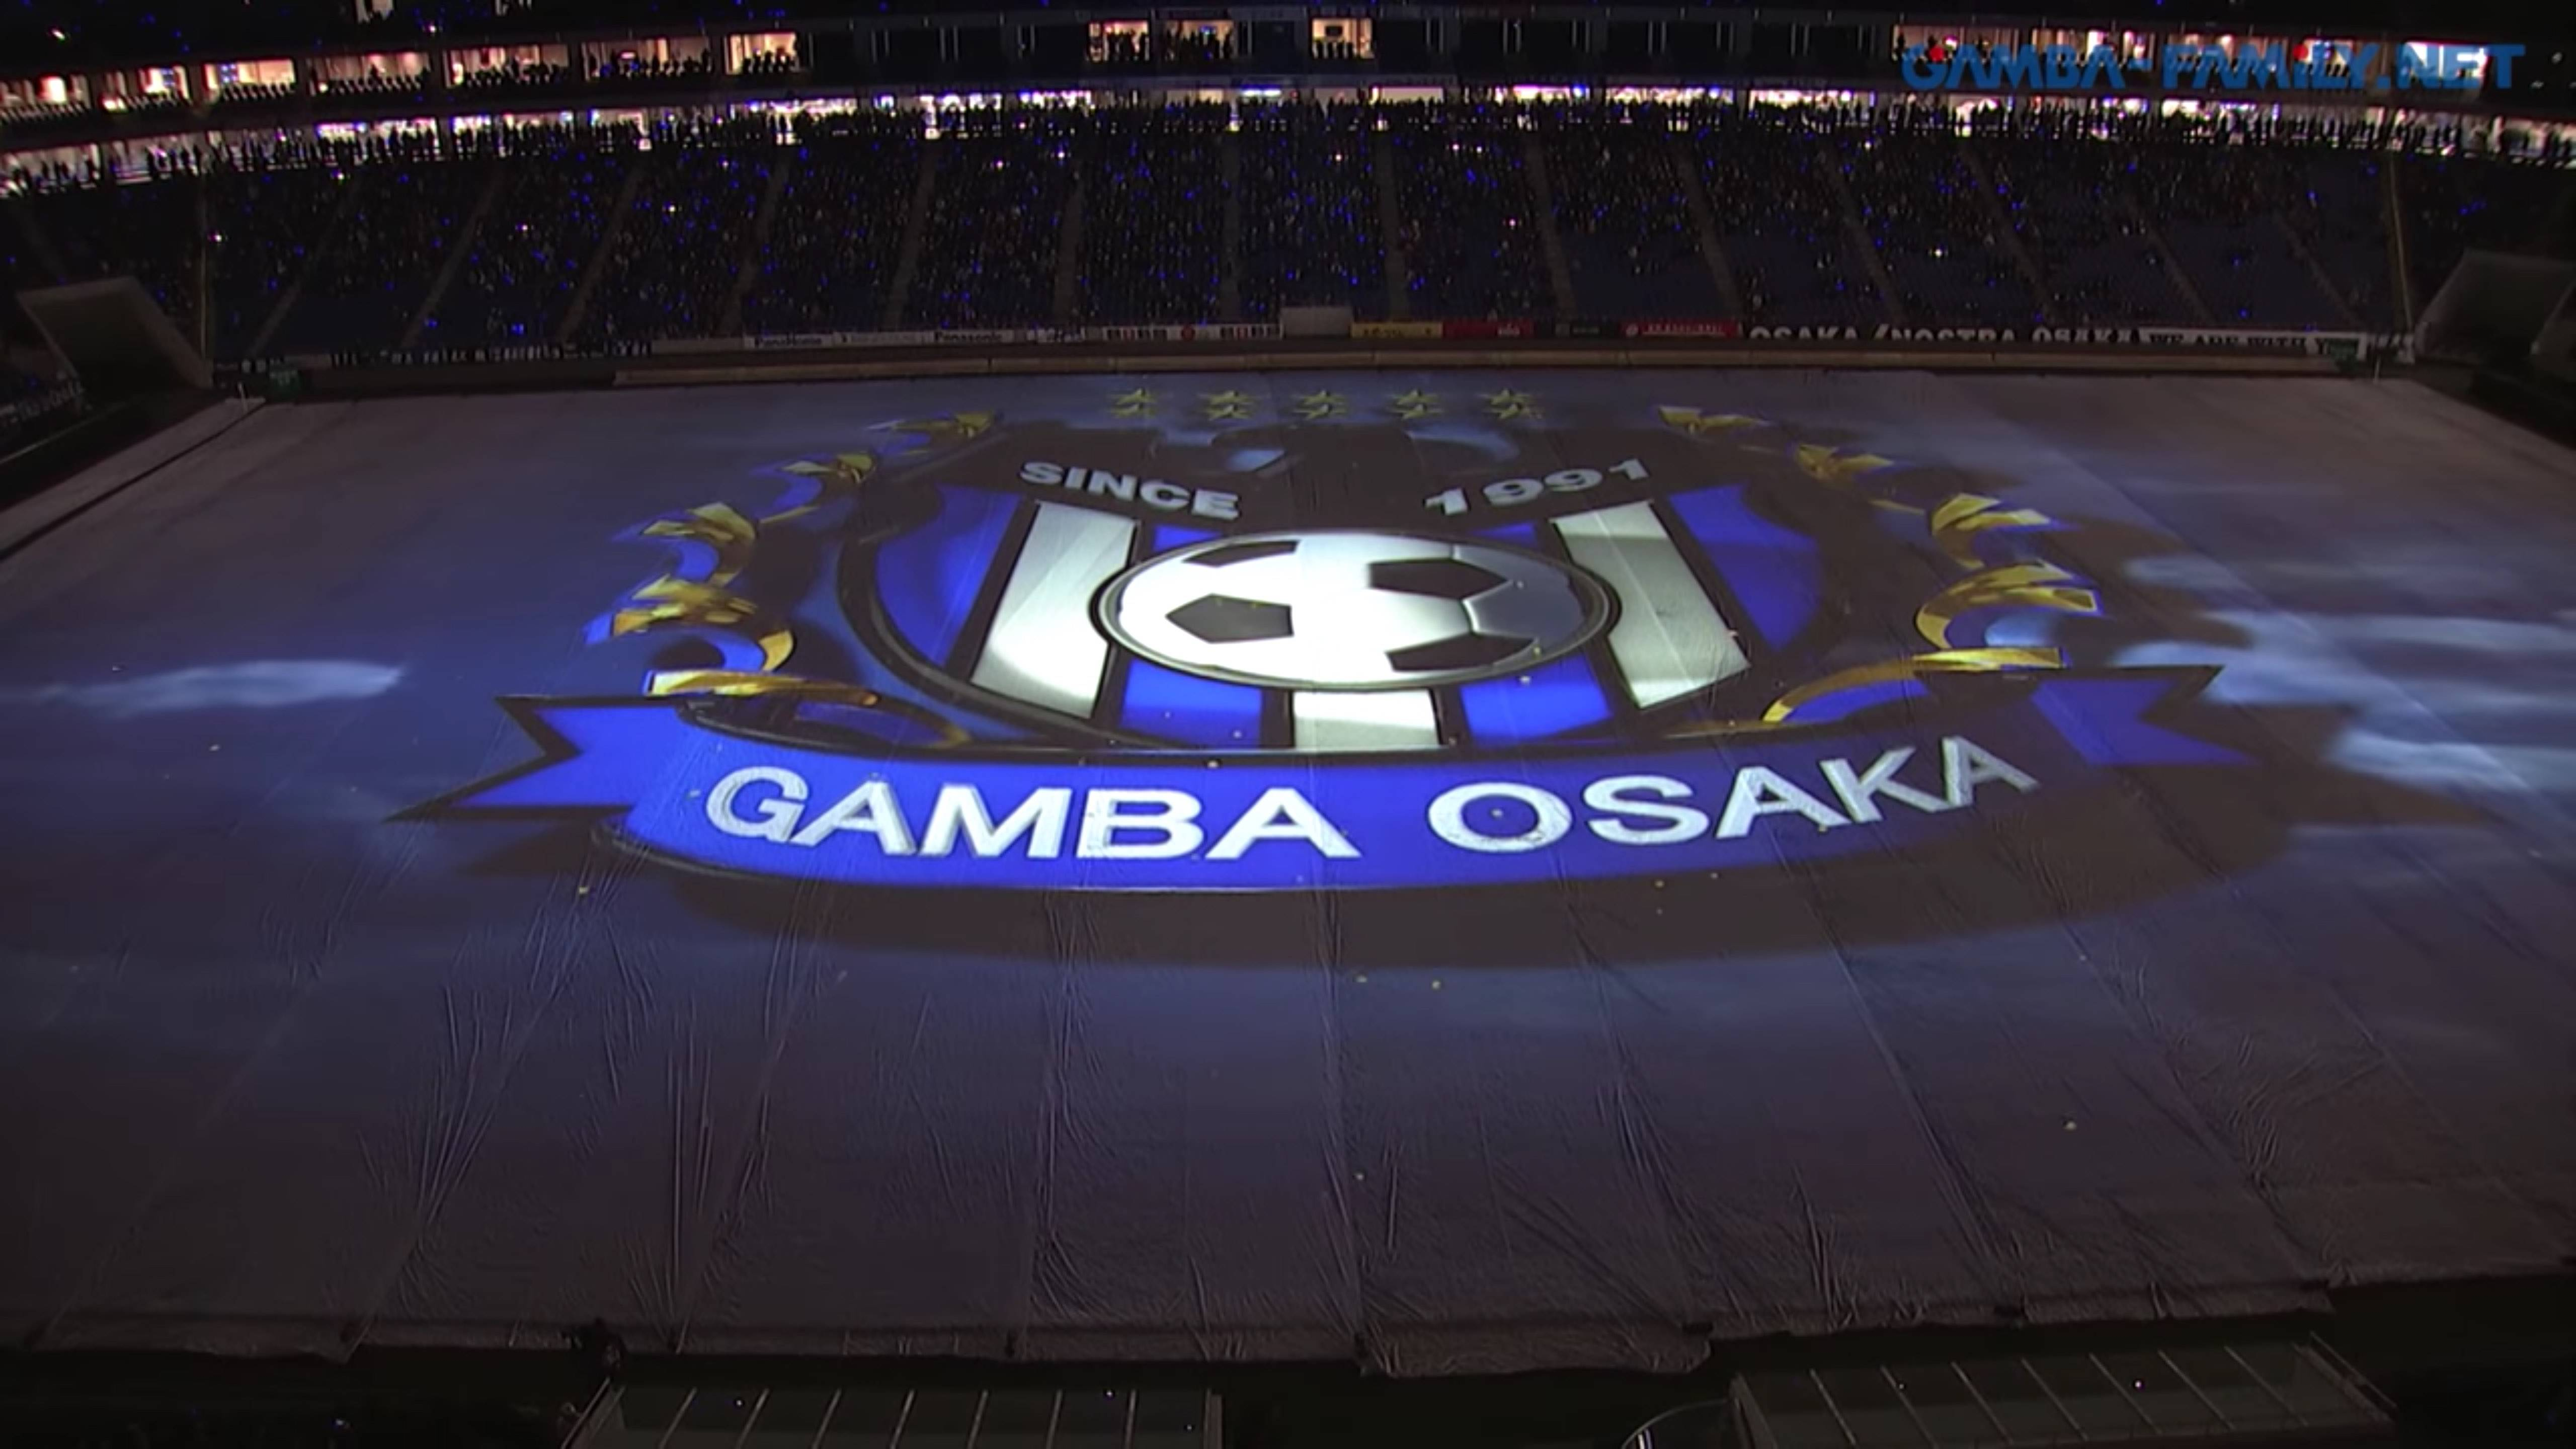 VIDEO: Gamba Osaka unveil full-pitch projection mapping in J.League first